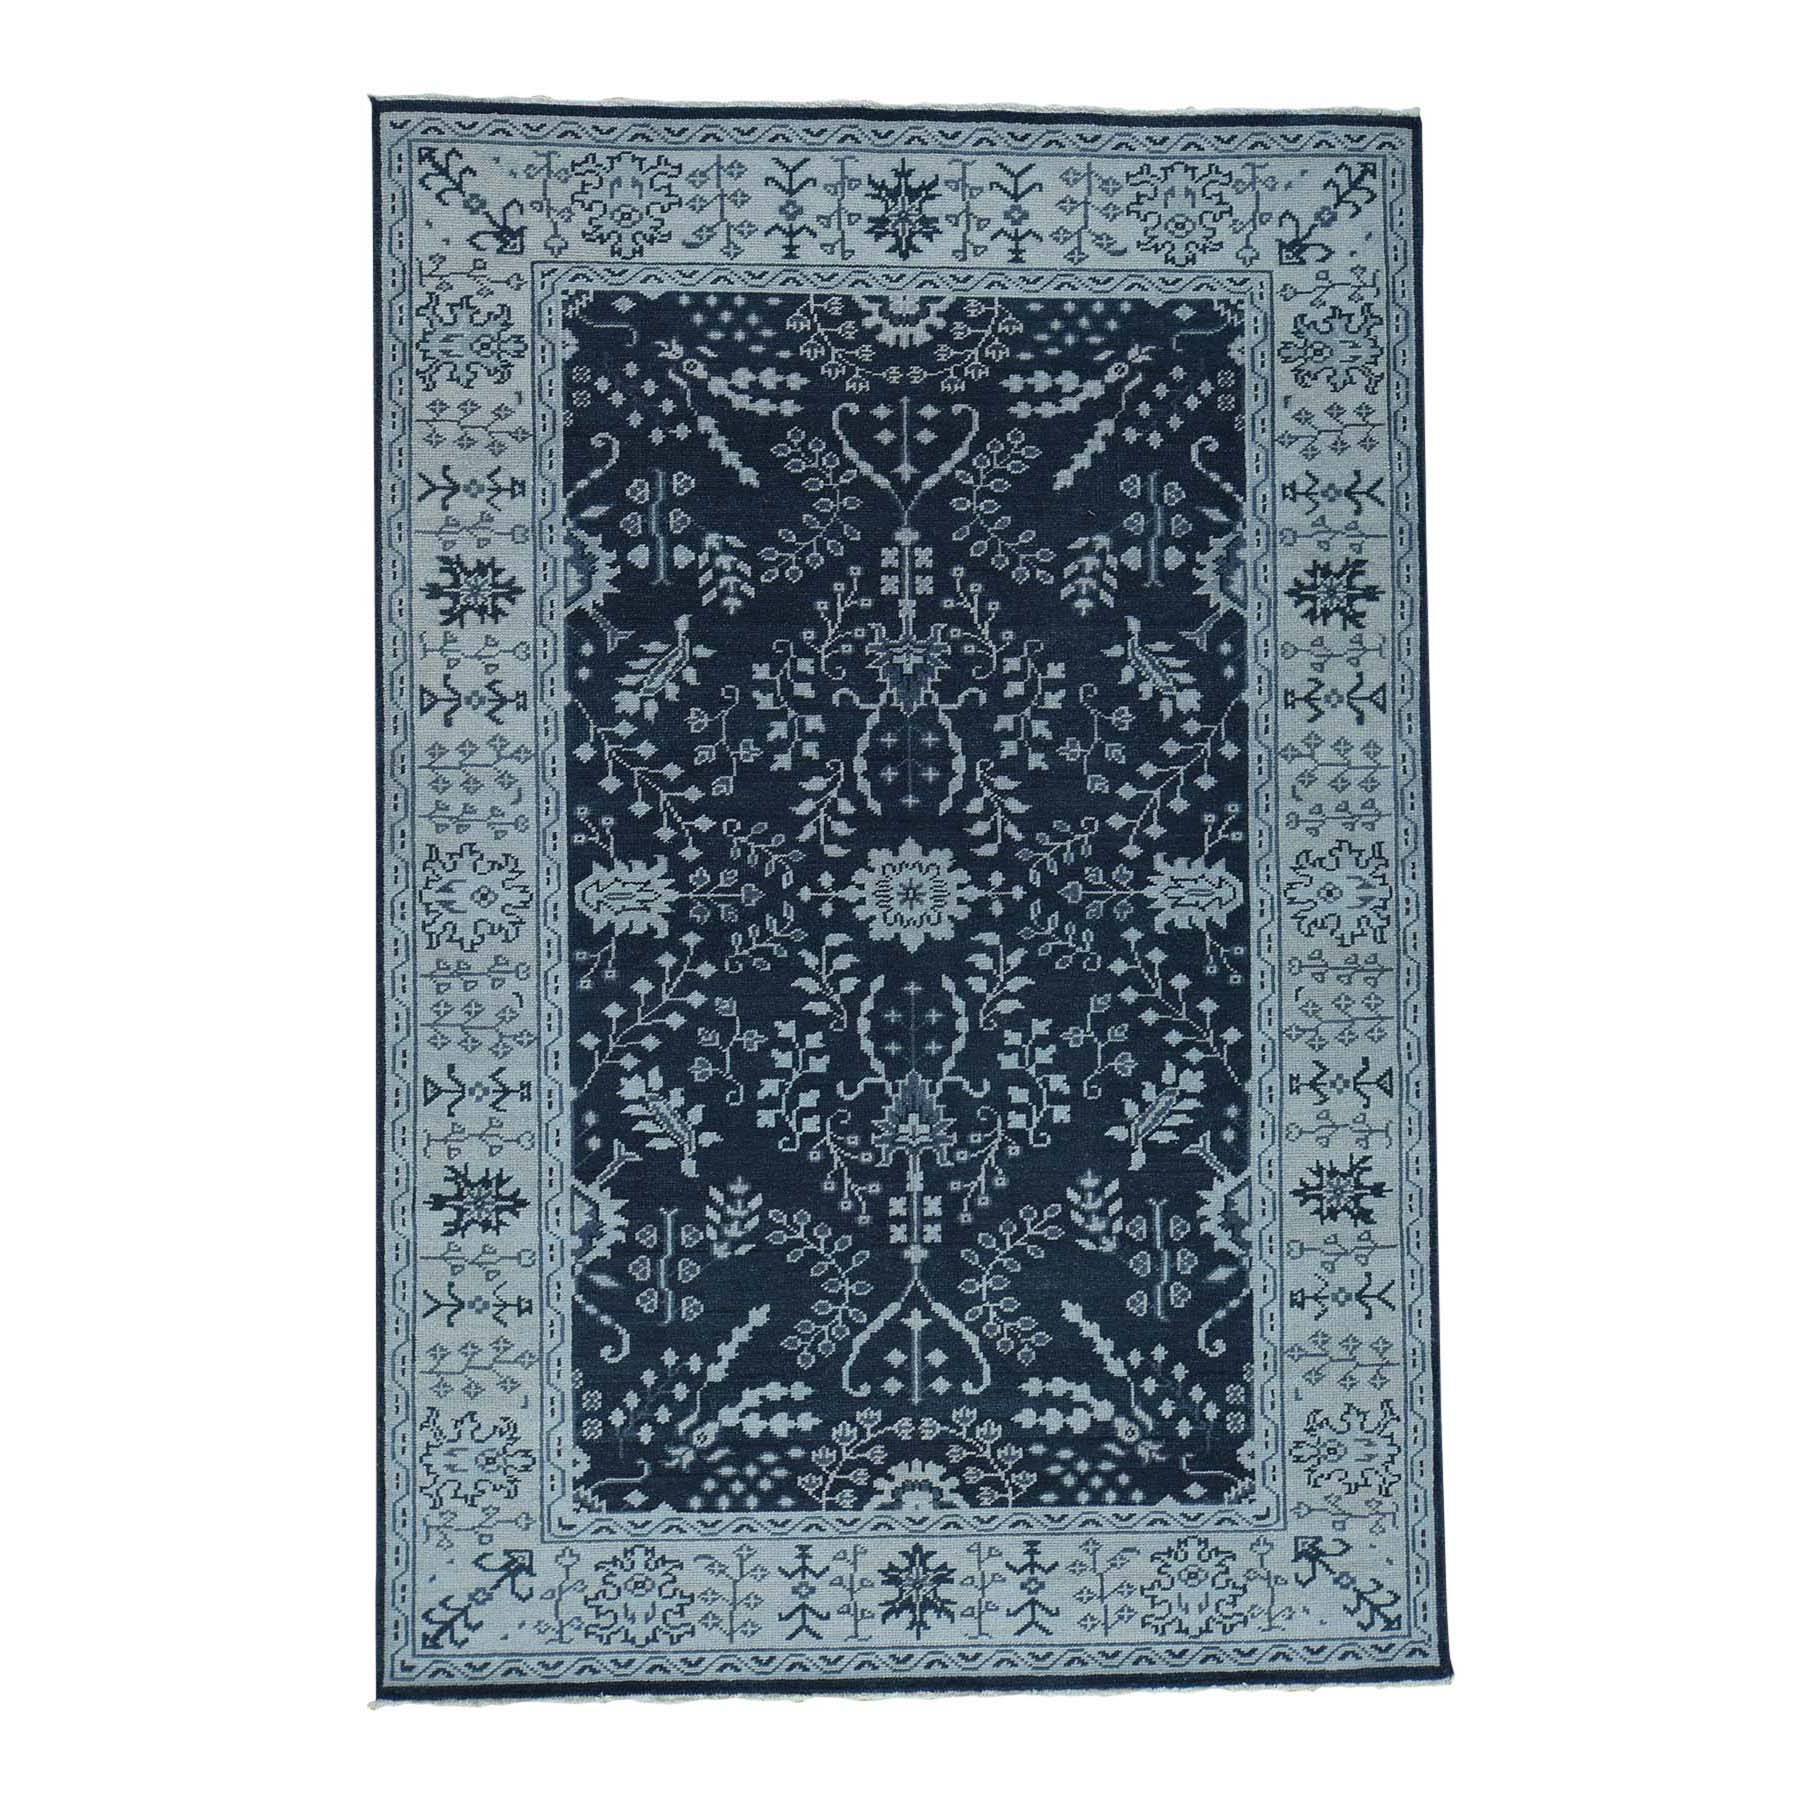 6'1''x9' Turkish Knot Oushak Sarouk Design Hand-Knotted Oriental Rug